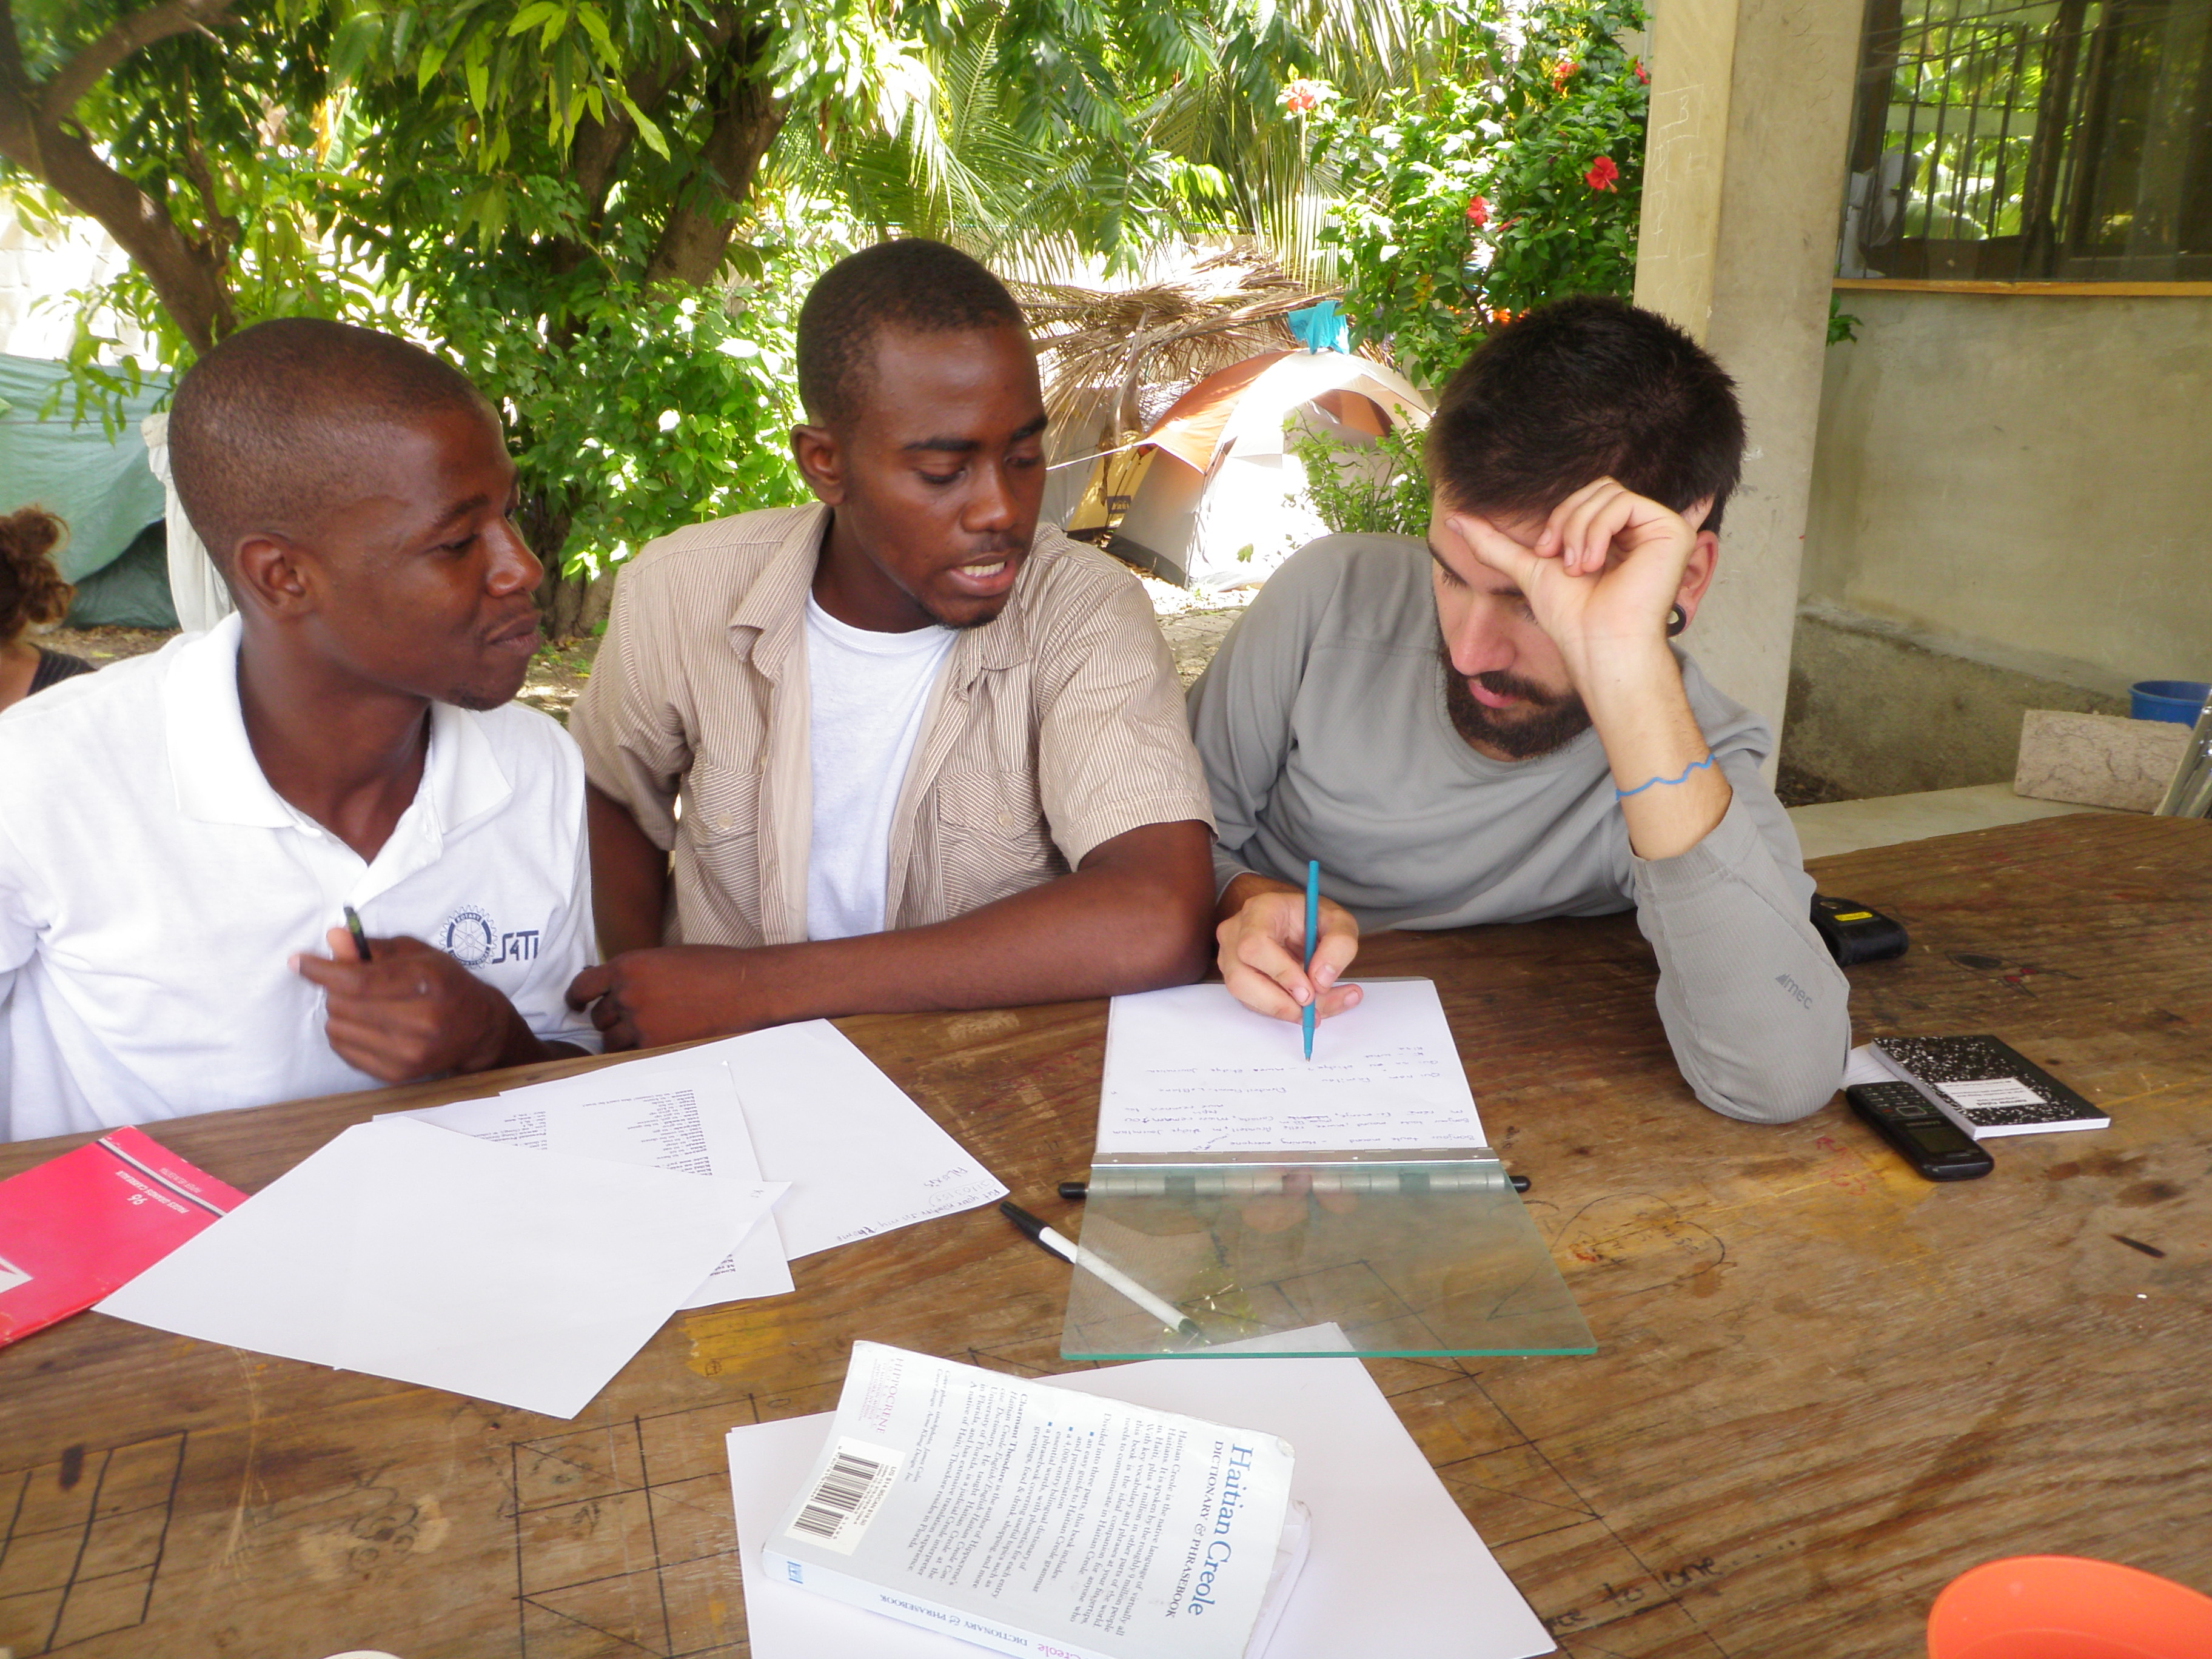 File:Haitian students learn English from Canadian volunteer jpg